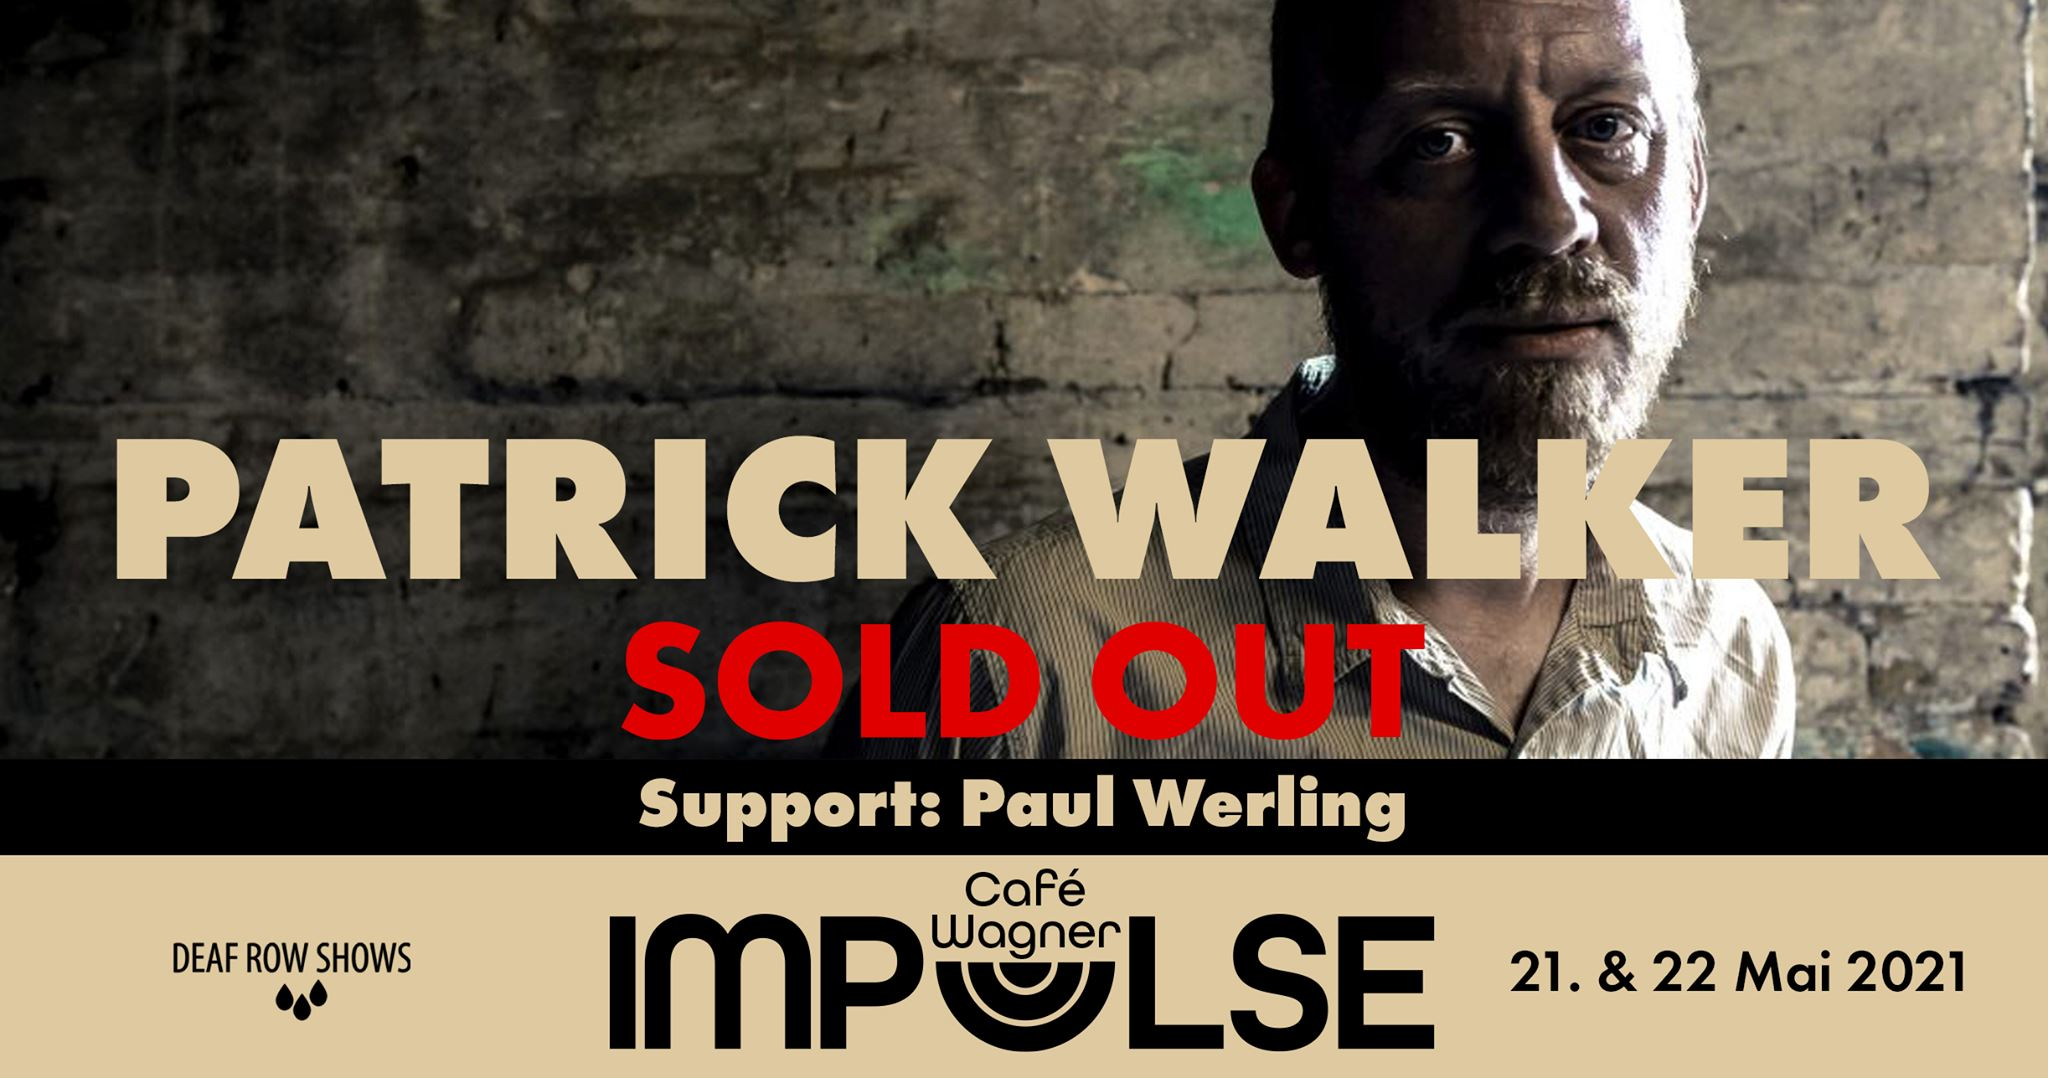 IMPULSE PATRICK WALKER & PAUL WERLING 21./22.05. Café Wagner